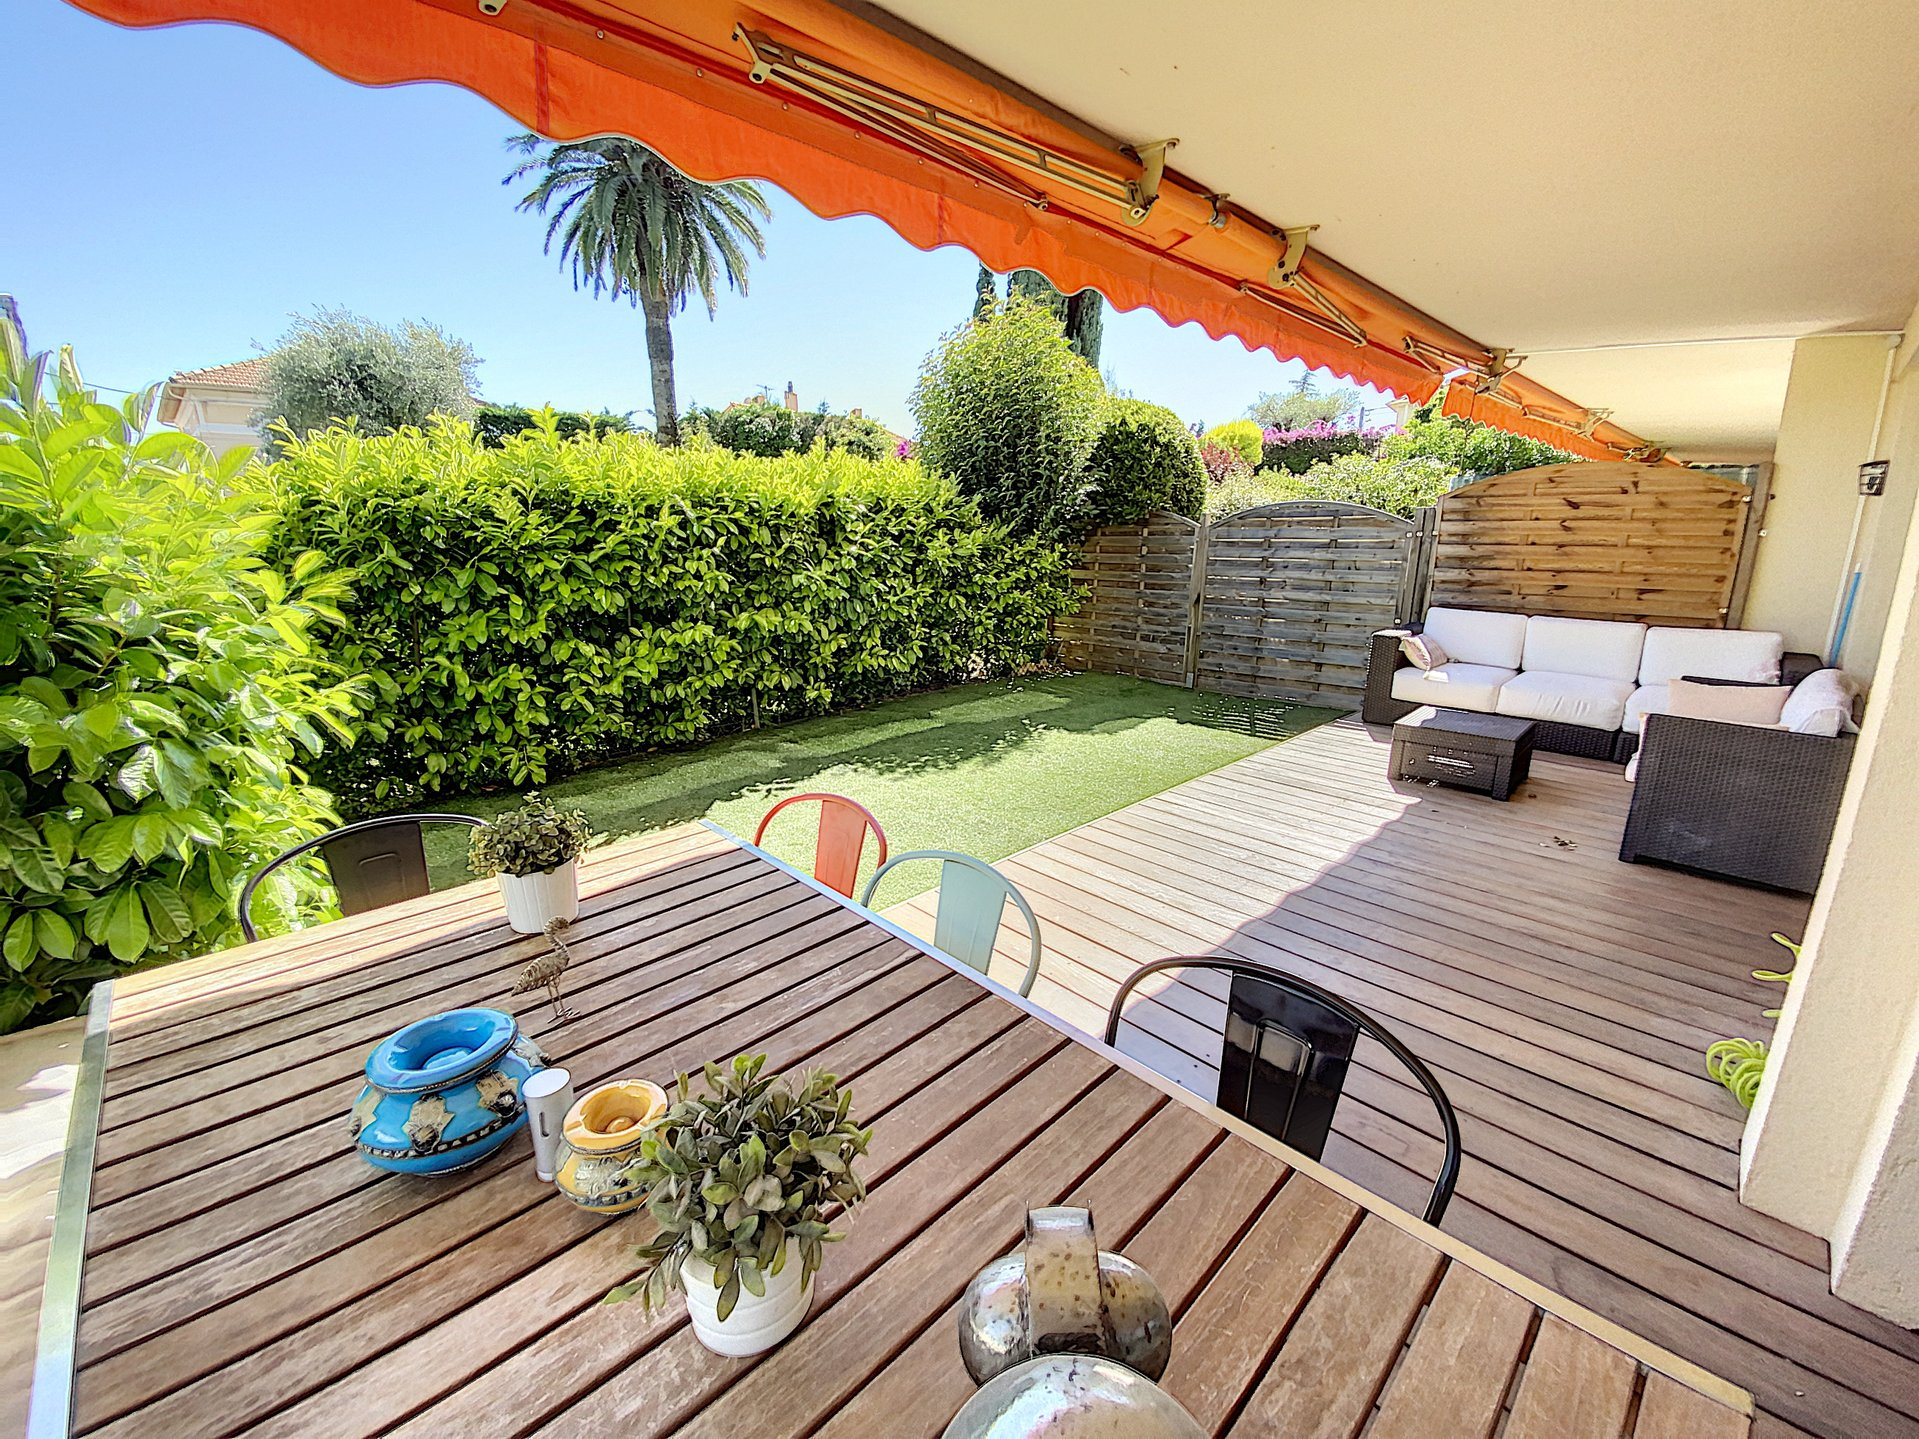 Le CANNET - Nice 4 rooms with garden. Quiet area